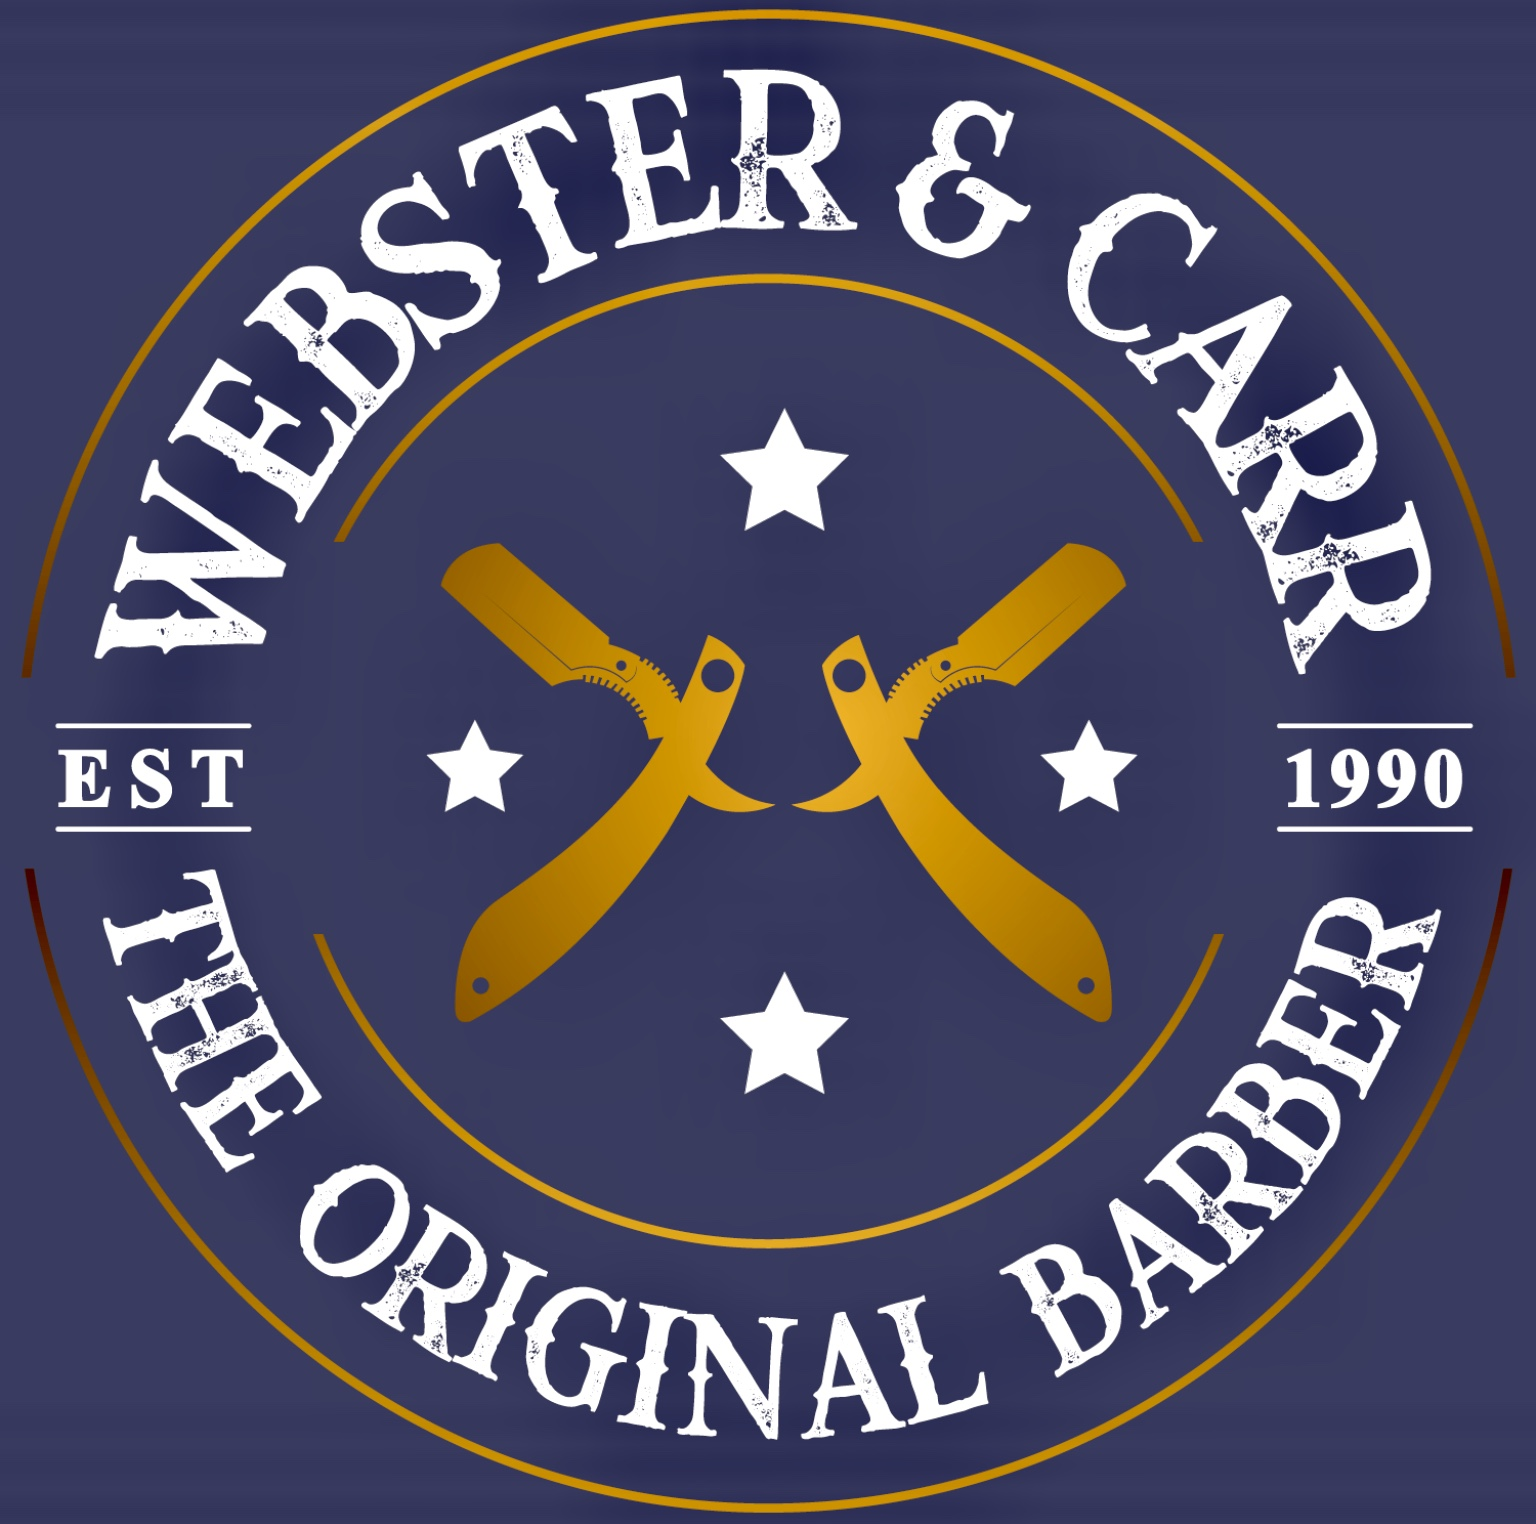 Webster and Carr Image